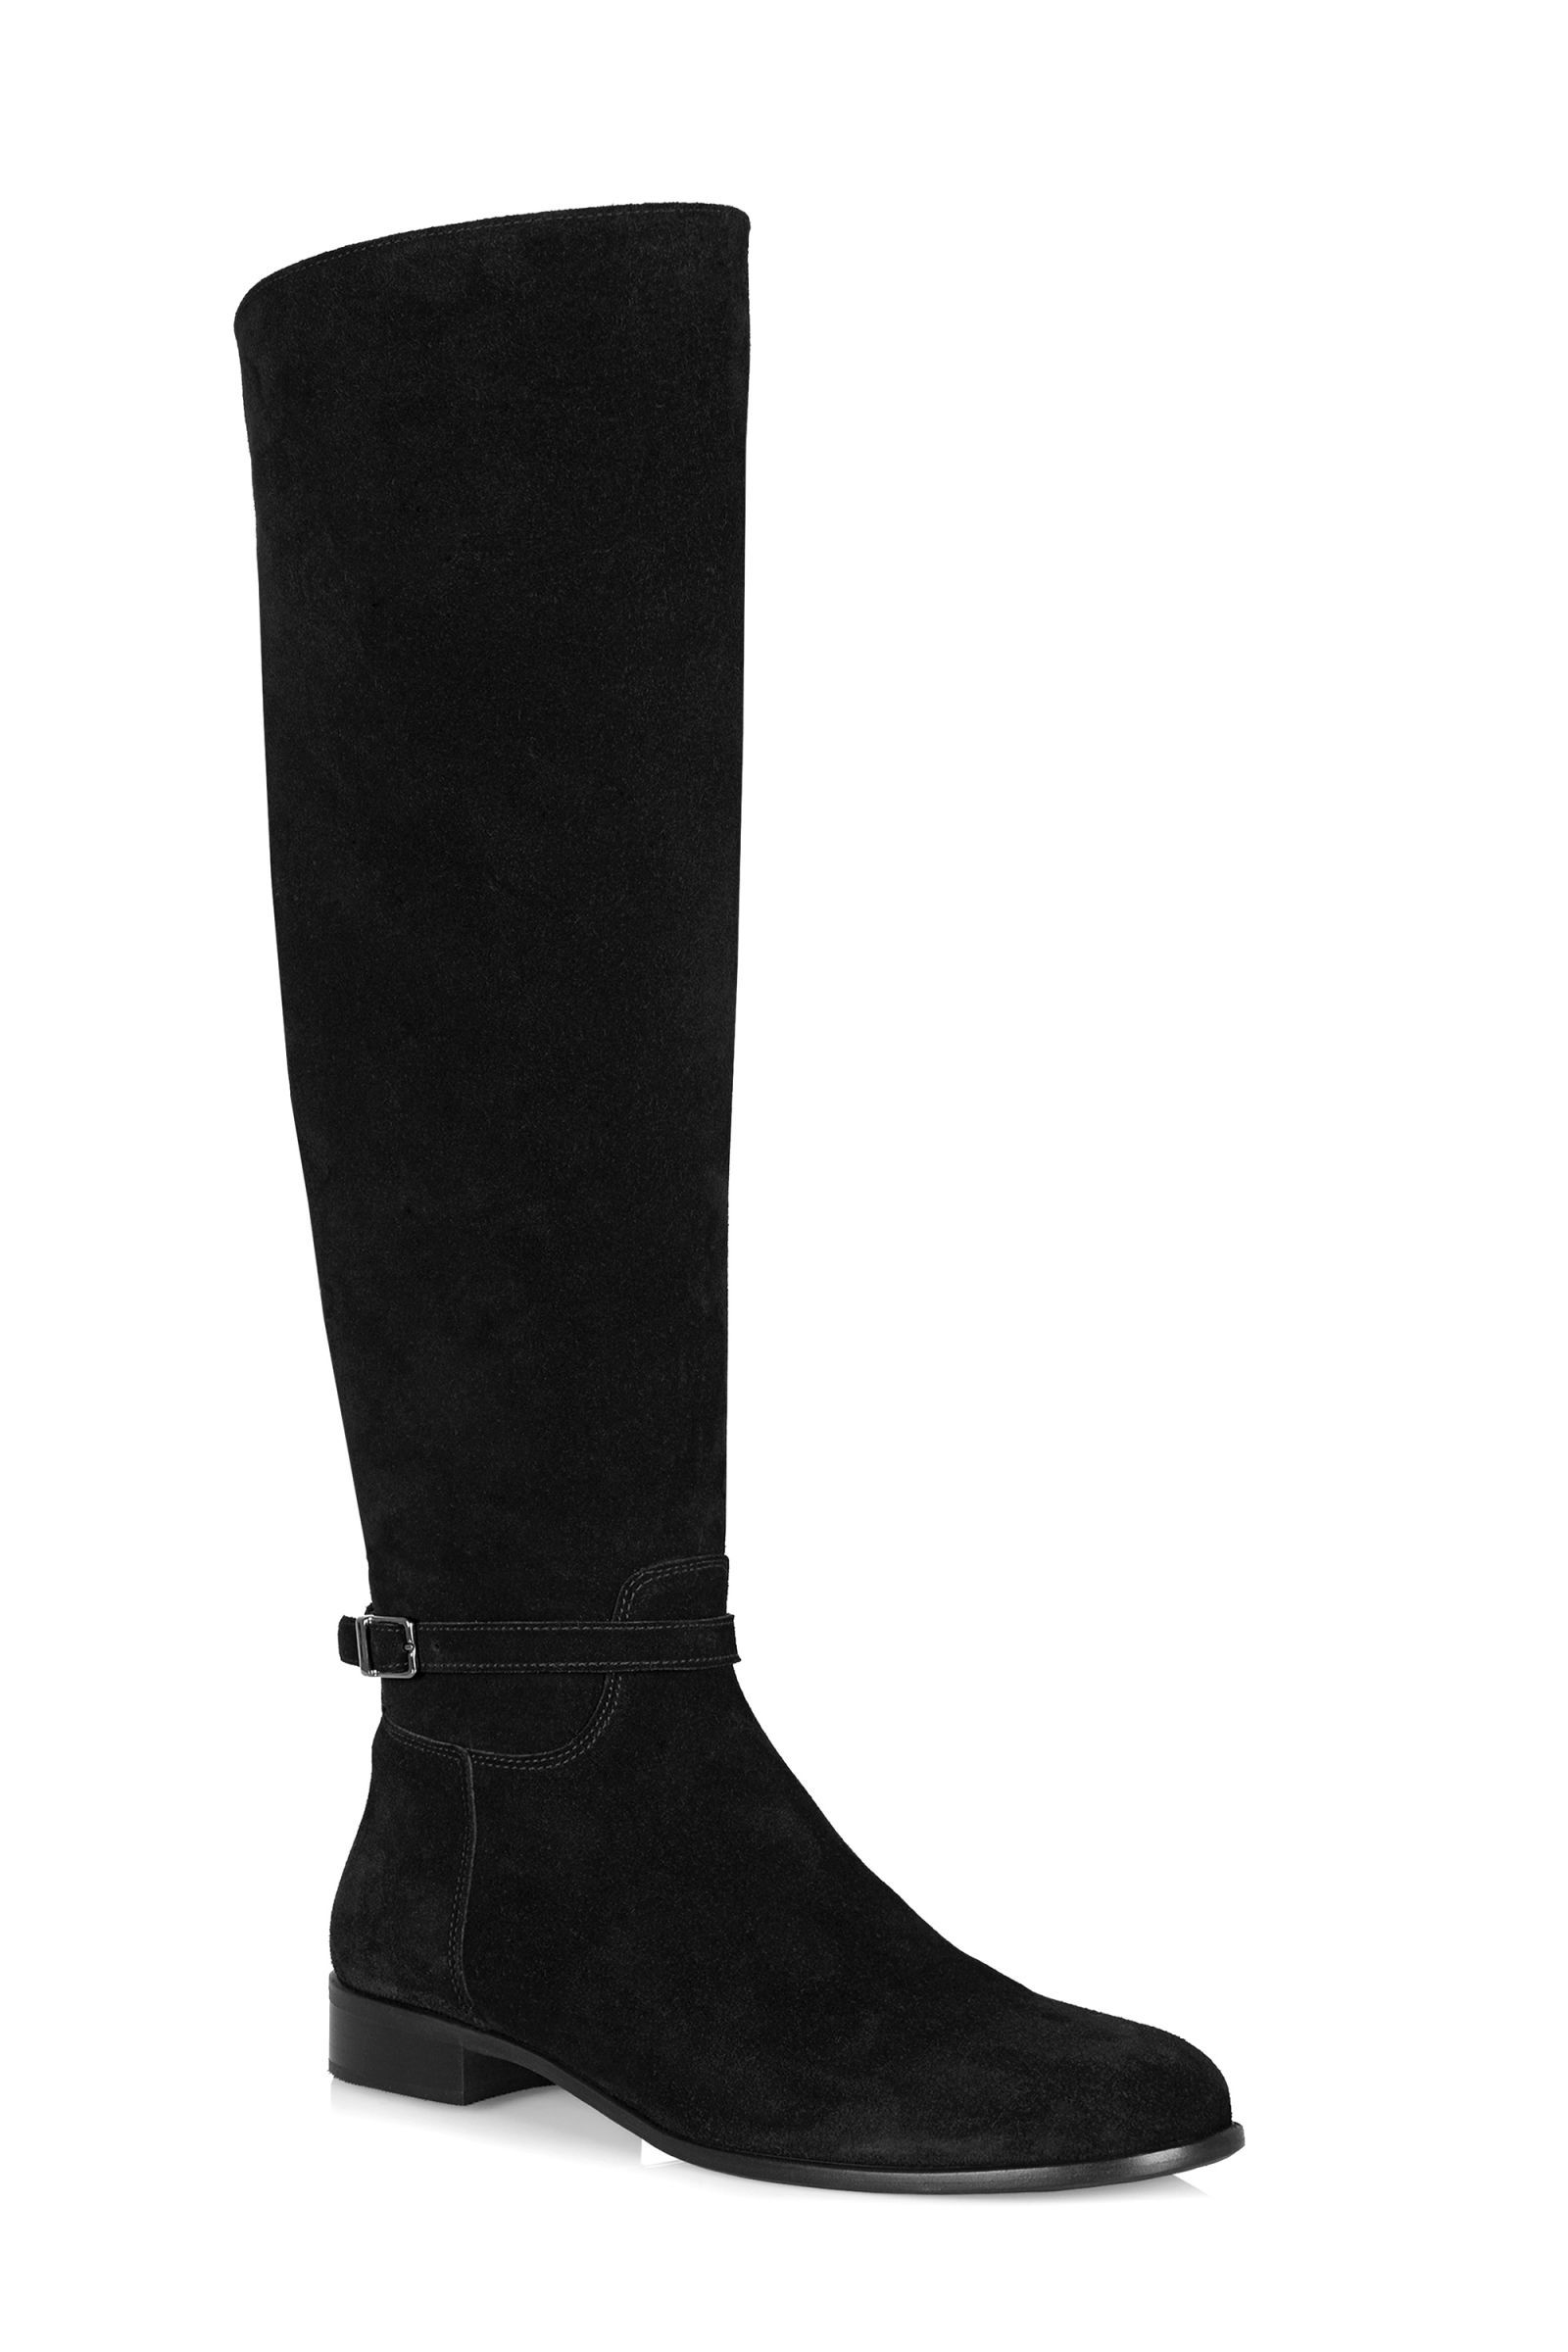 13 Weatherproof Shoes Disguised as Chic Black Boots